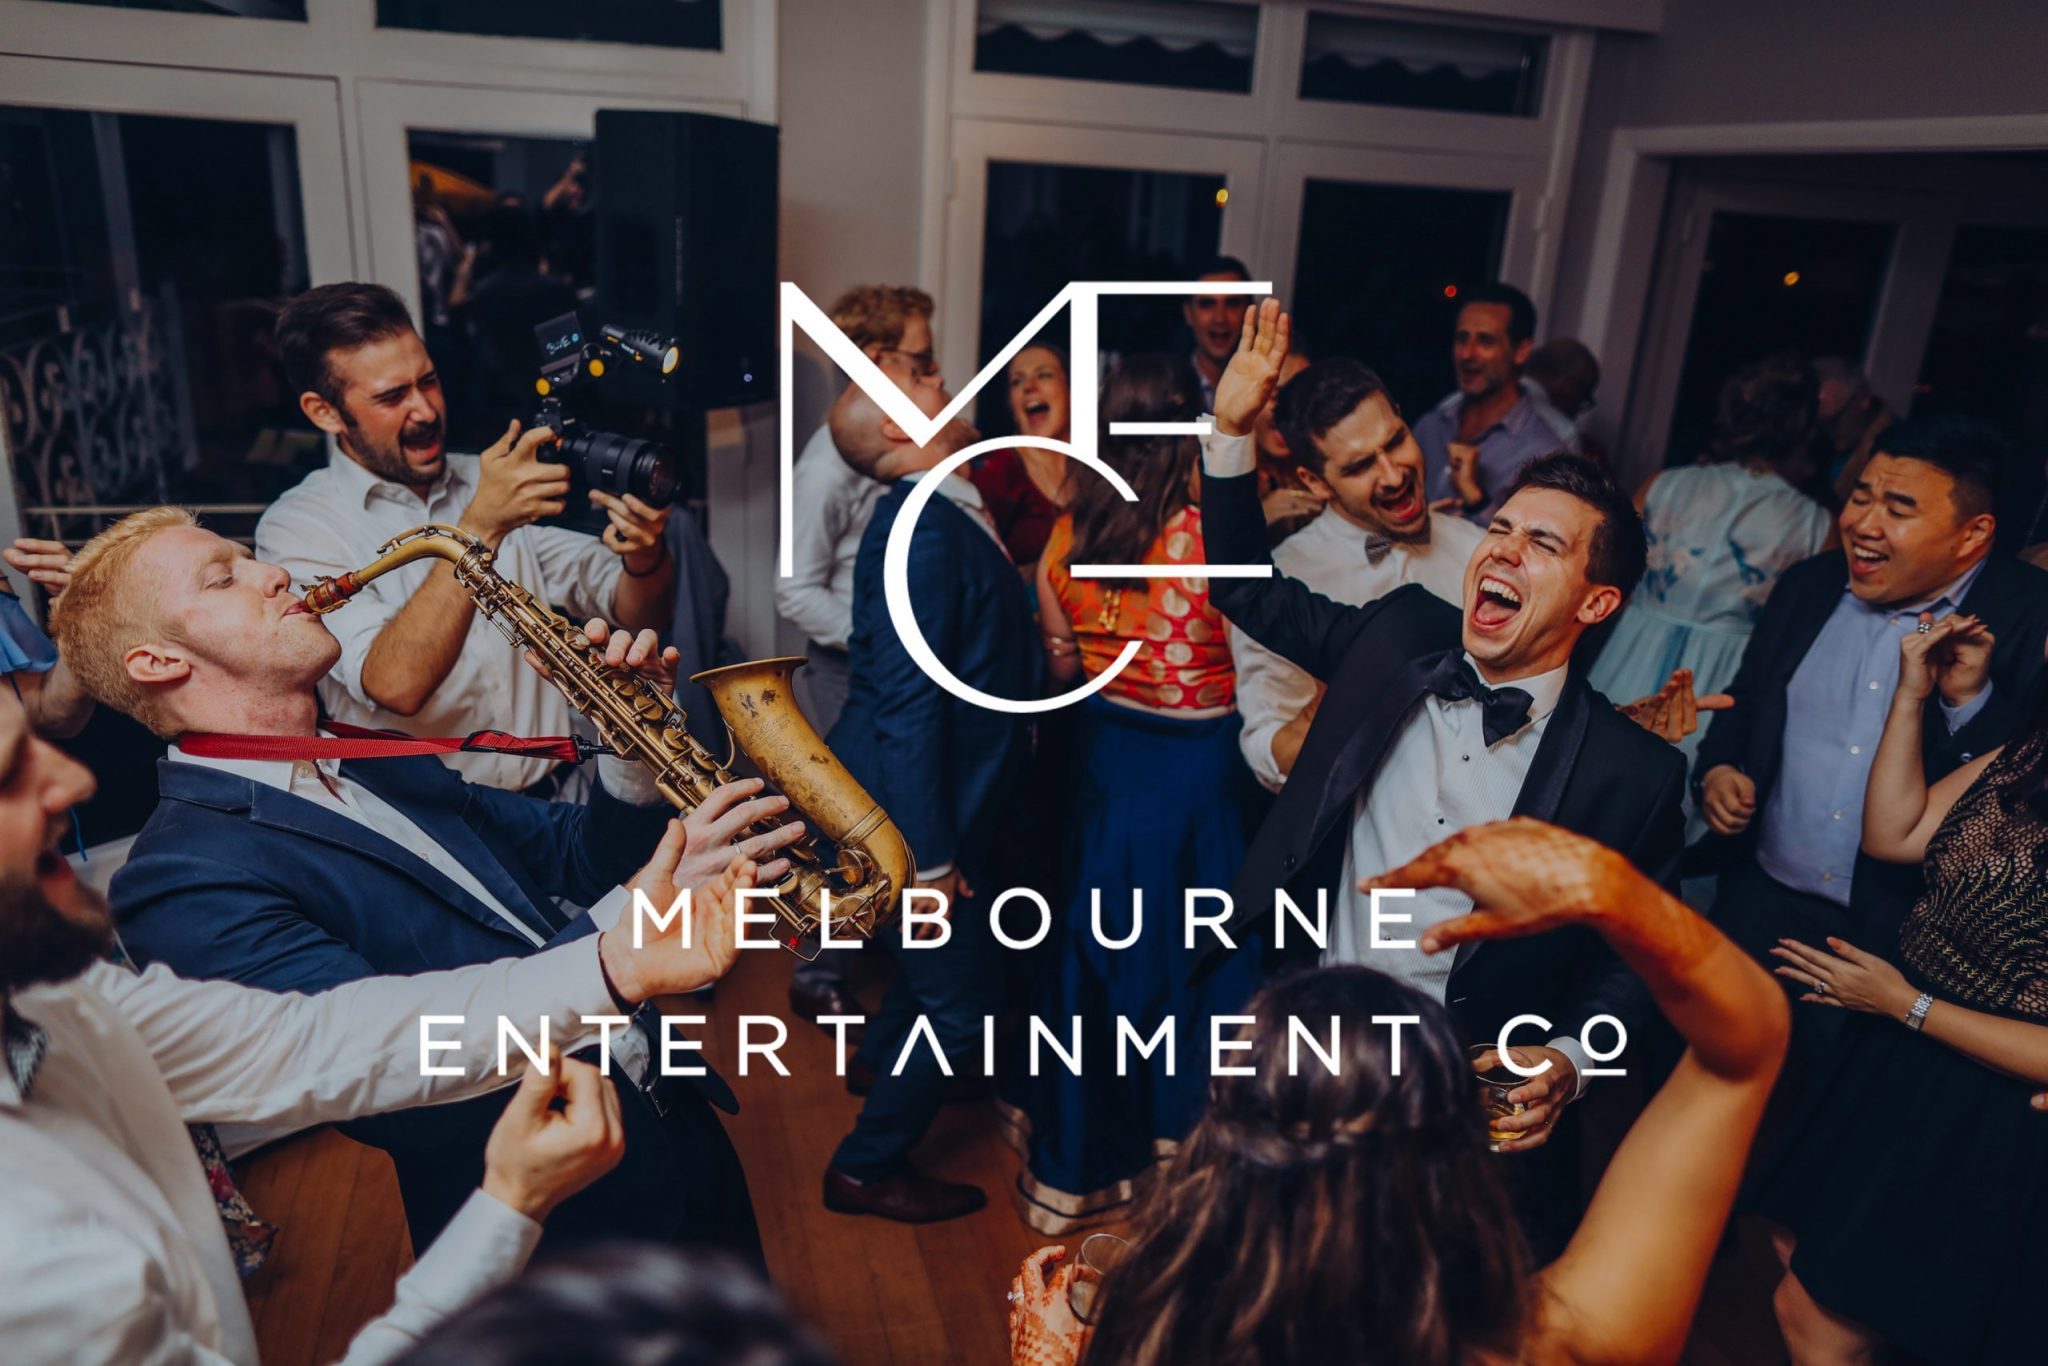 Melbourne Entertainment Company